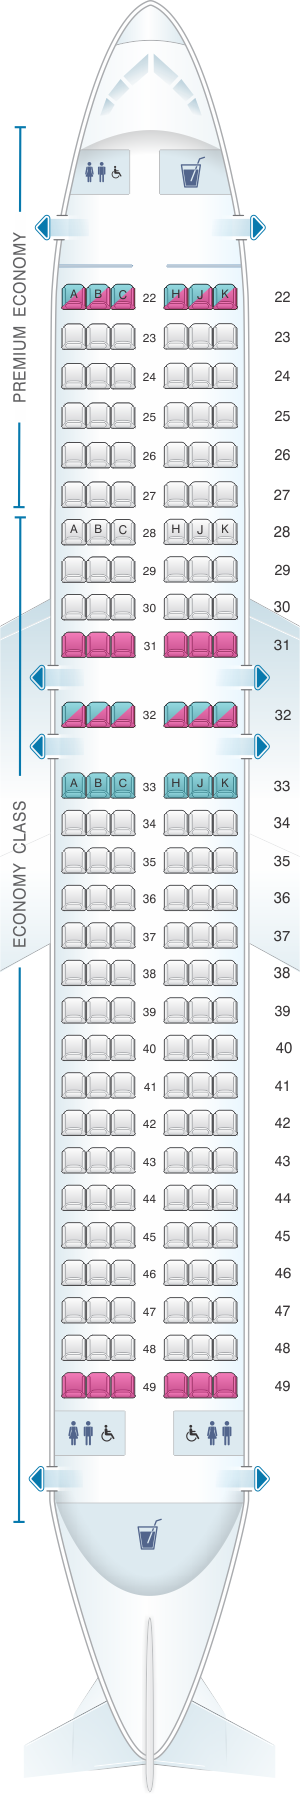 Seat map for Cathay Dragon Airbus A320 200 A32M